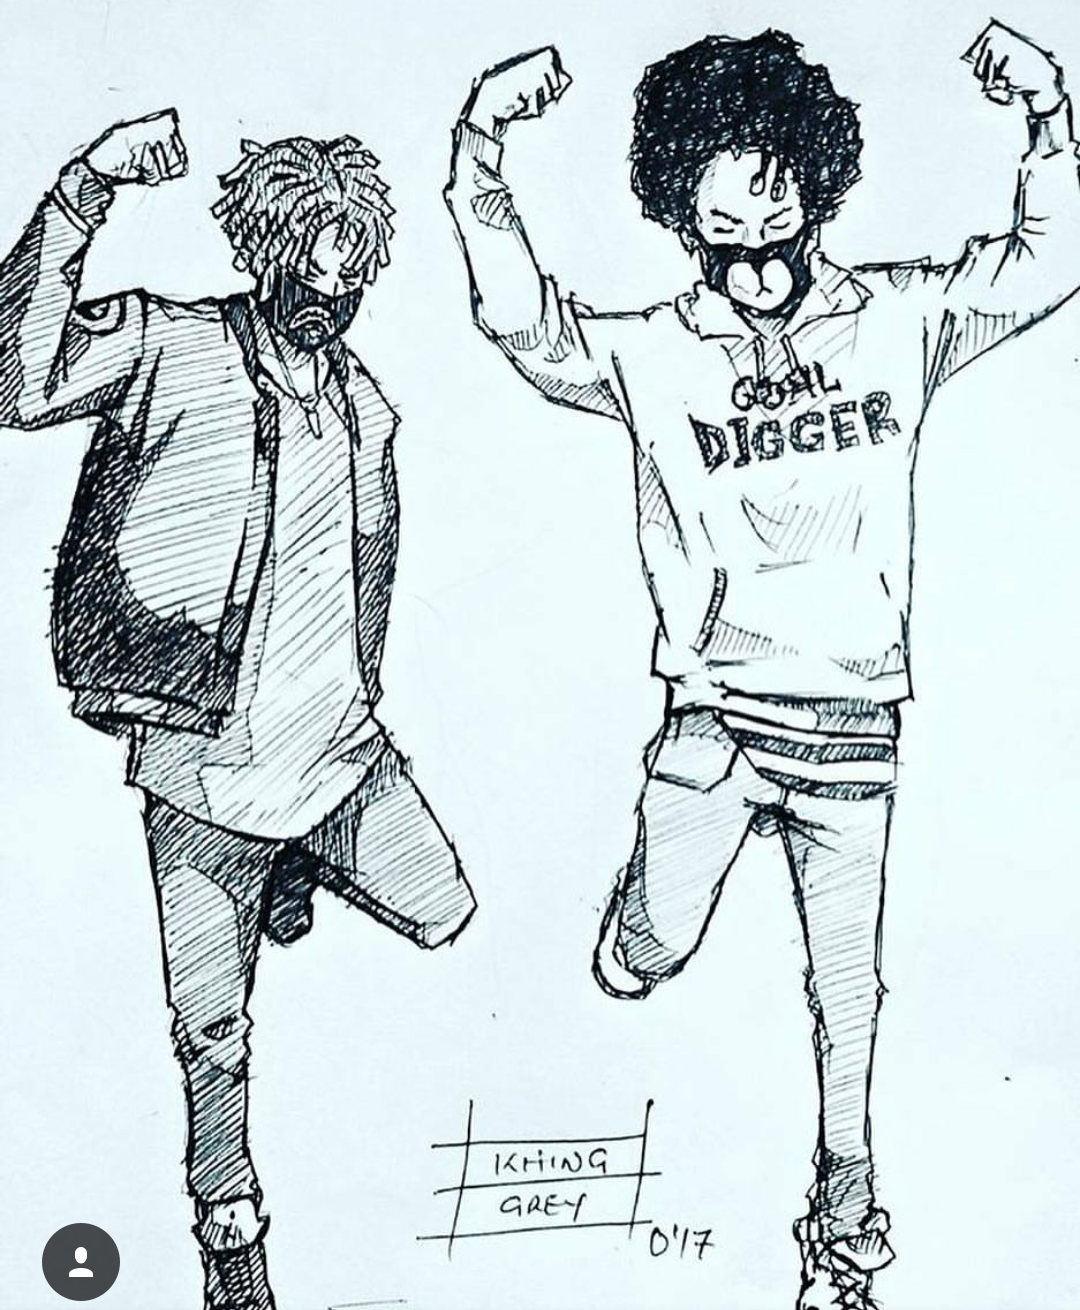 D43d7763d66f0421cdc662f5a55a1098 Png 1080 1310 Ayo And Teo Ayo Rapper Art